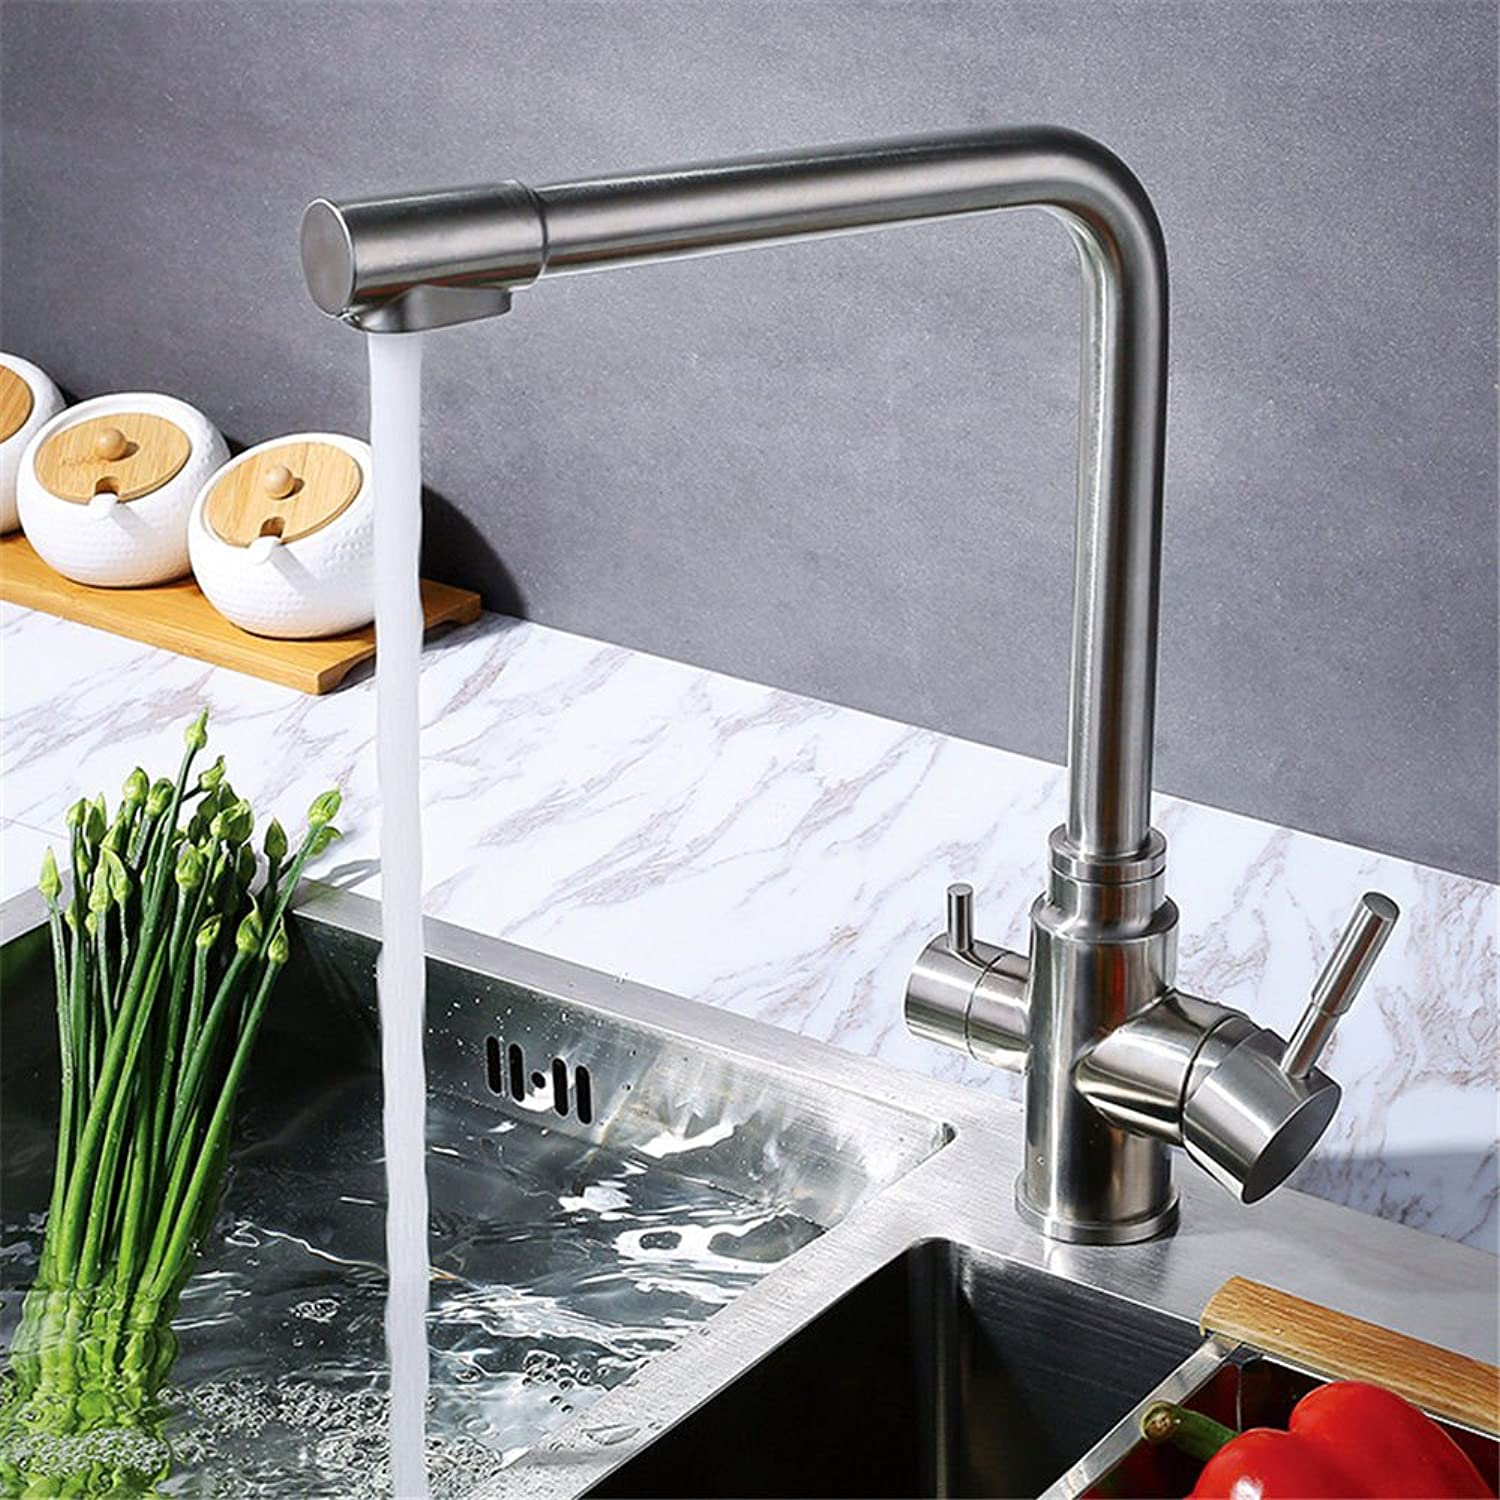 Lalaky Taps Faucet Kitchen Mixer Sink Waterfall Bathroom Mixer Basin Mixer Tap for Kitchen Bathroom and Washroom Hot and Cold Stainless Steel redating Water